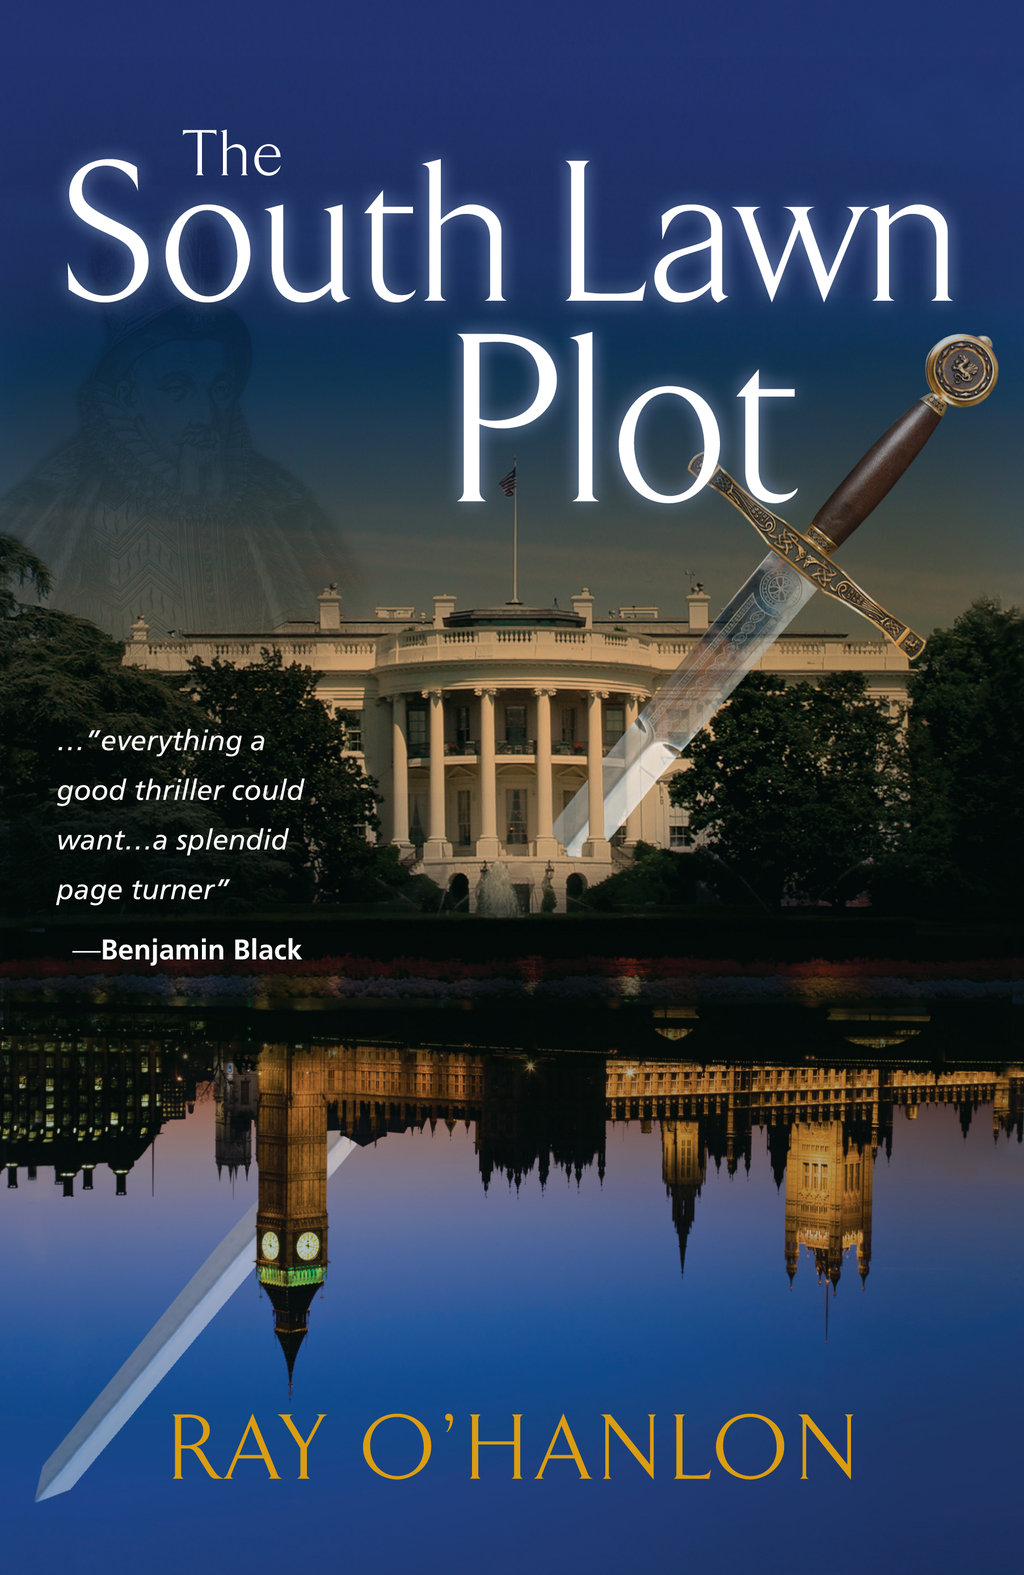 The South Lawn Plot By: Ray O'Hanlon